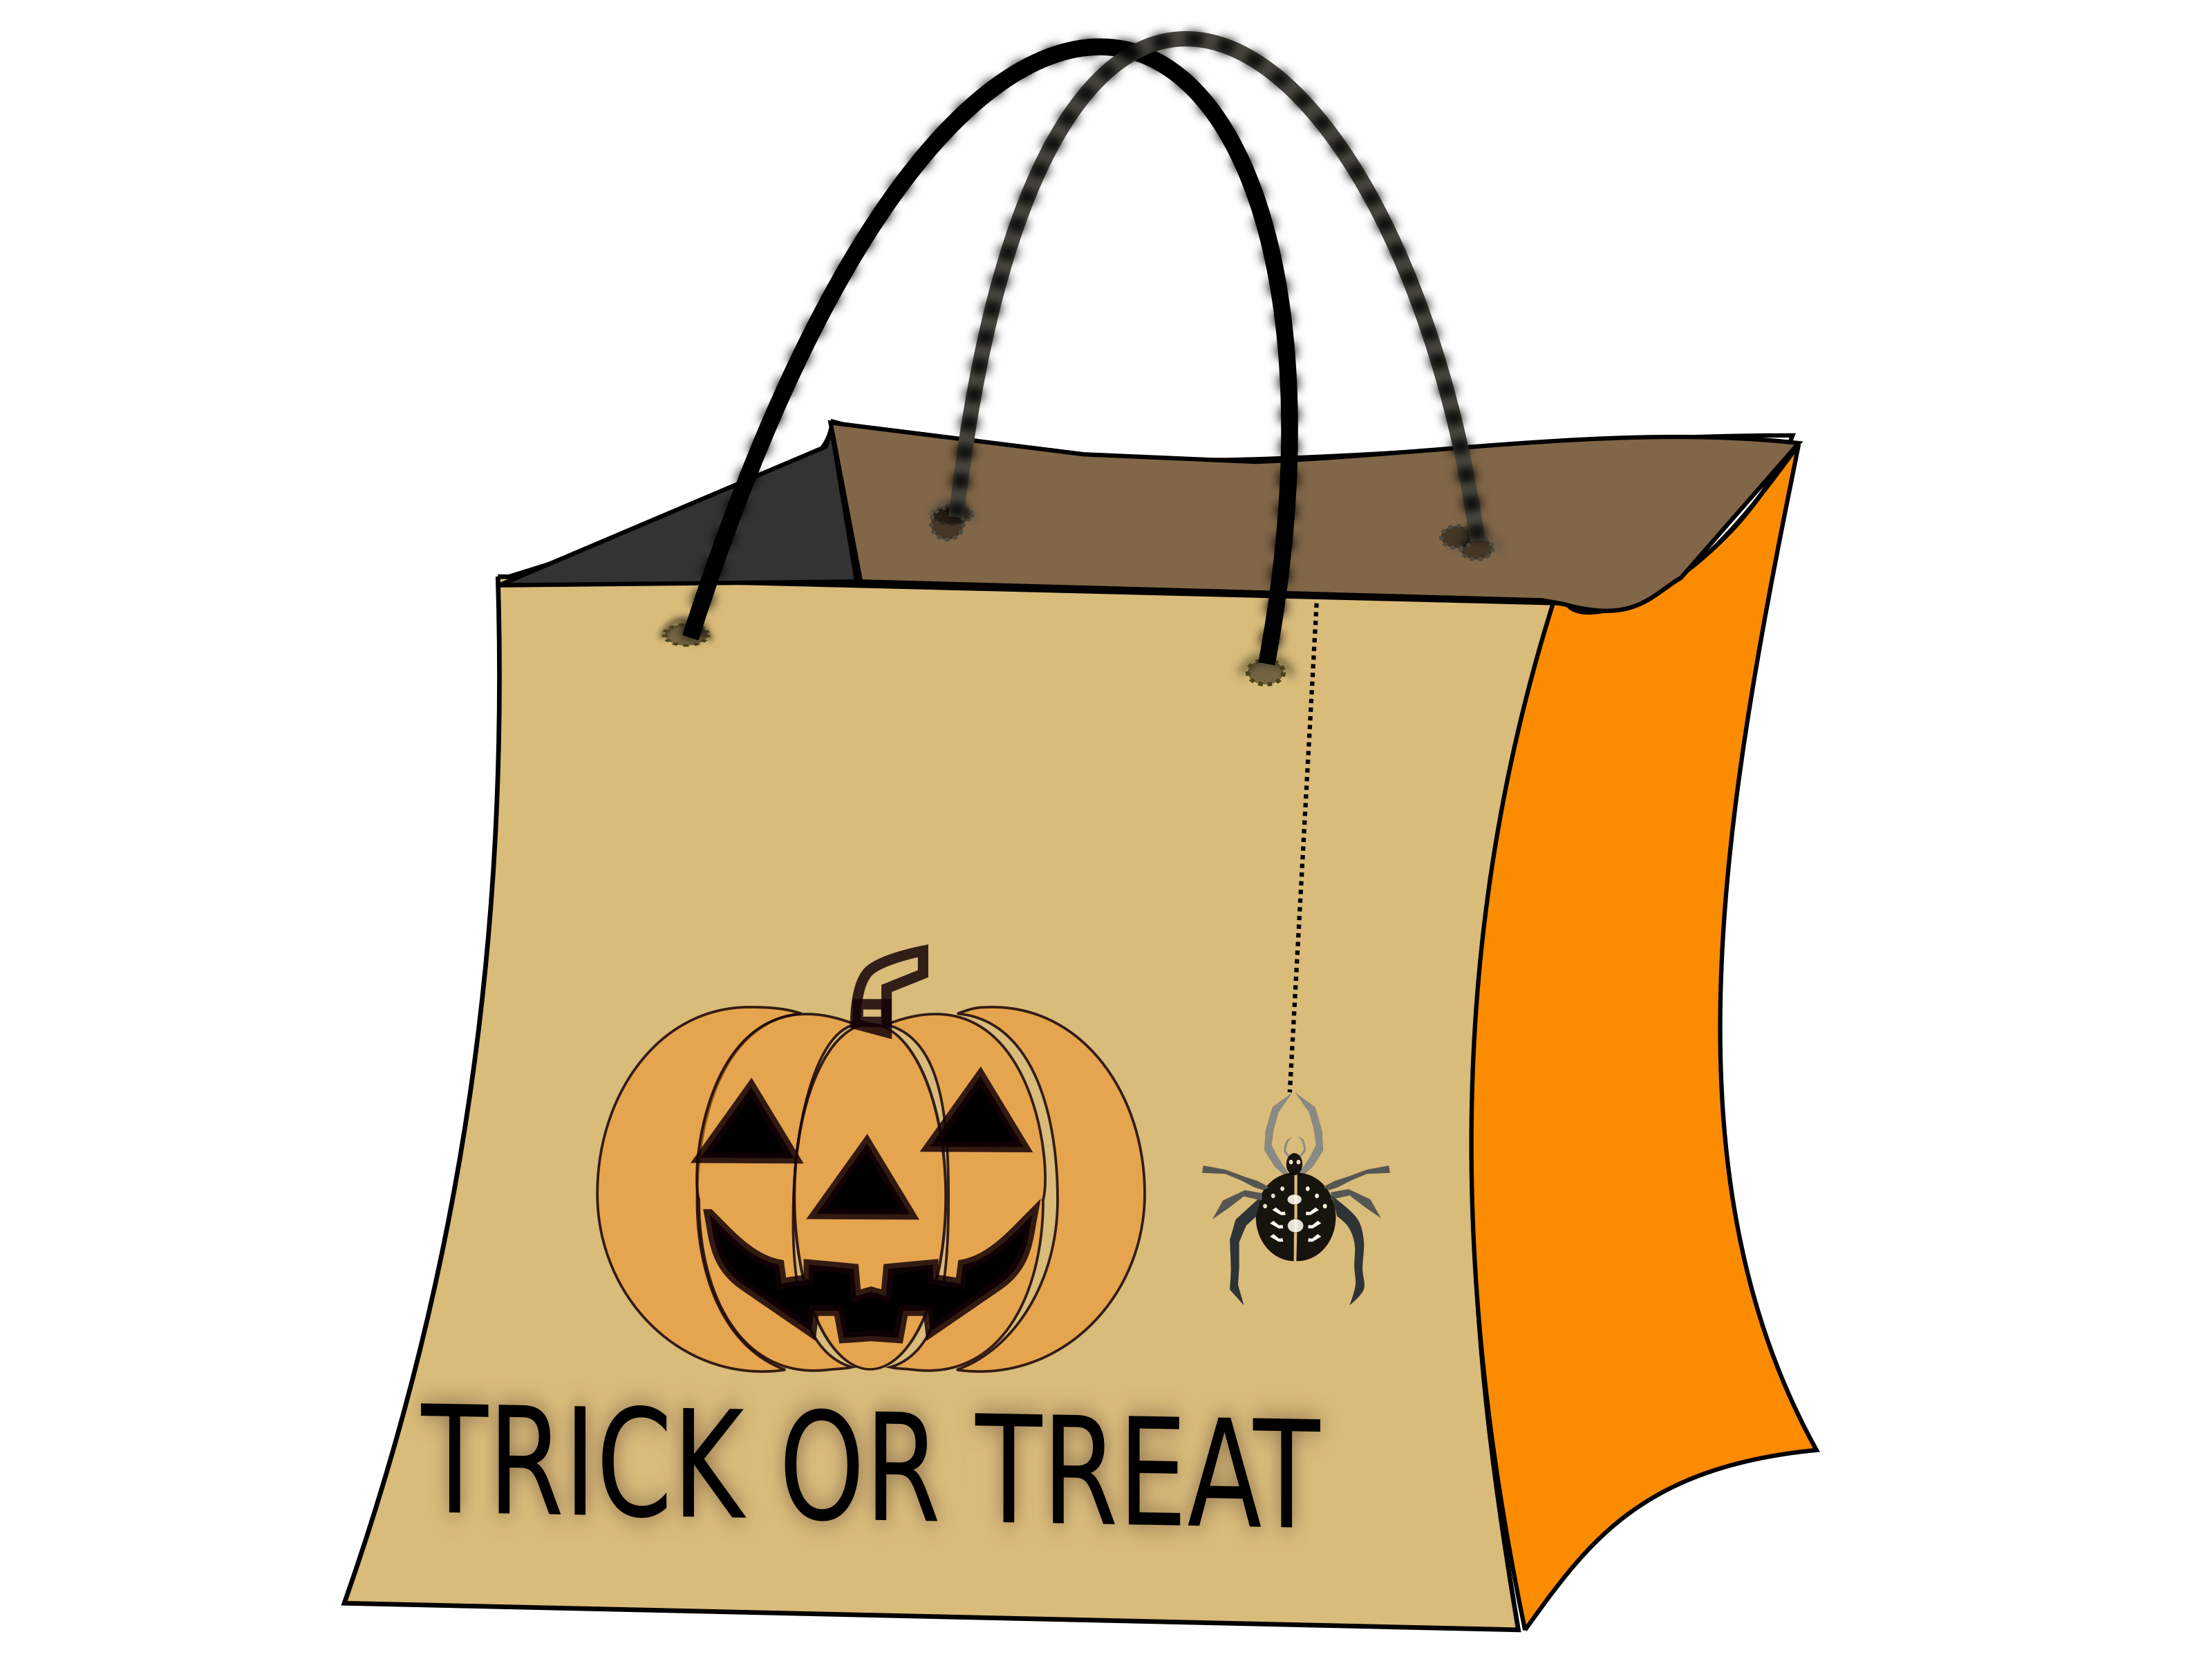 Trick or treat bag clipart 5 » Clipart Station.